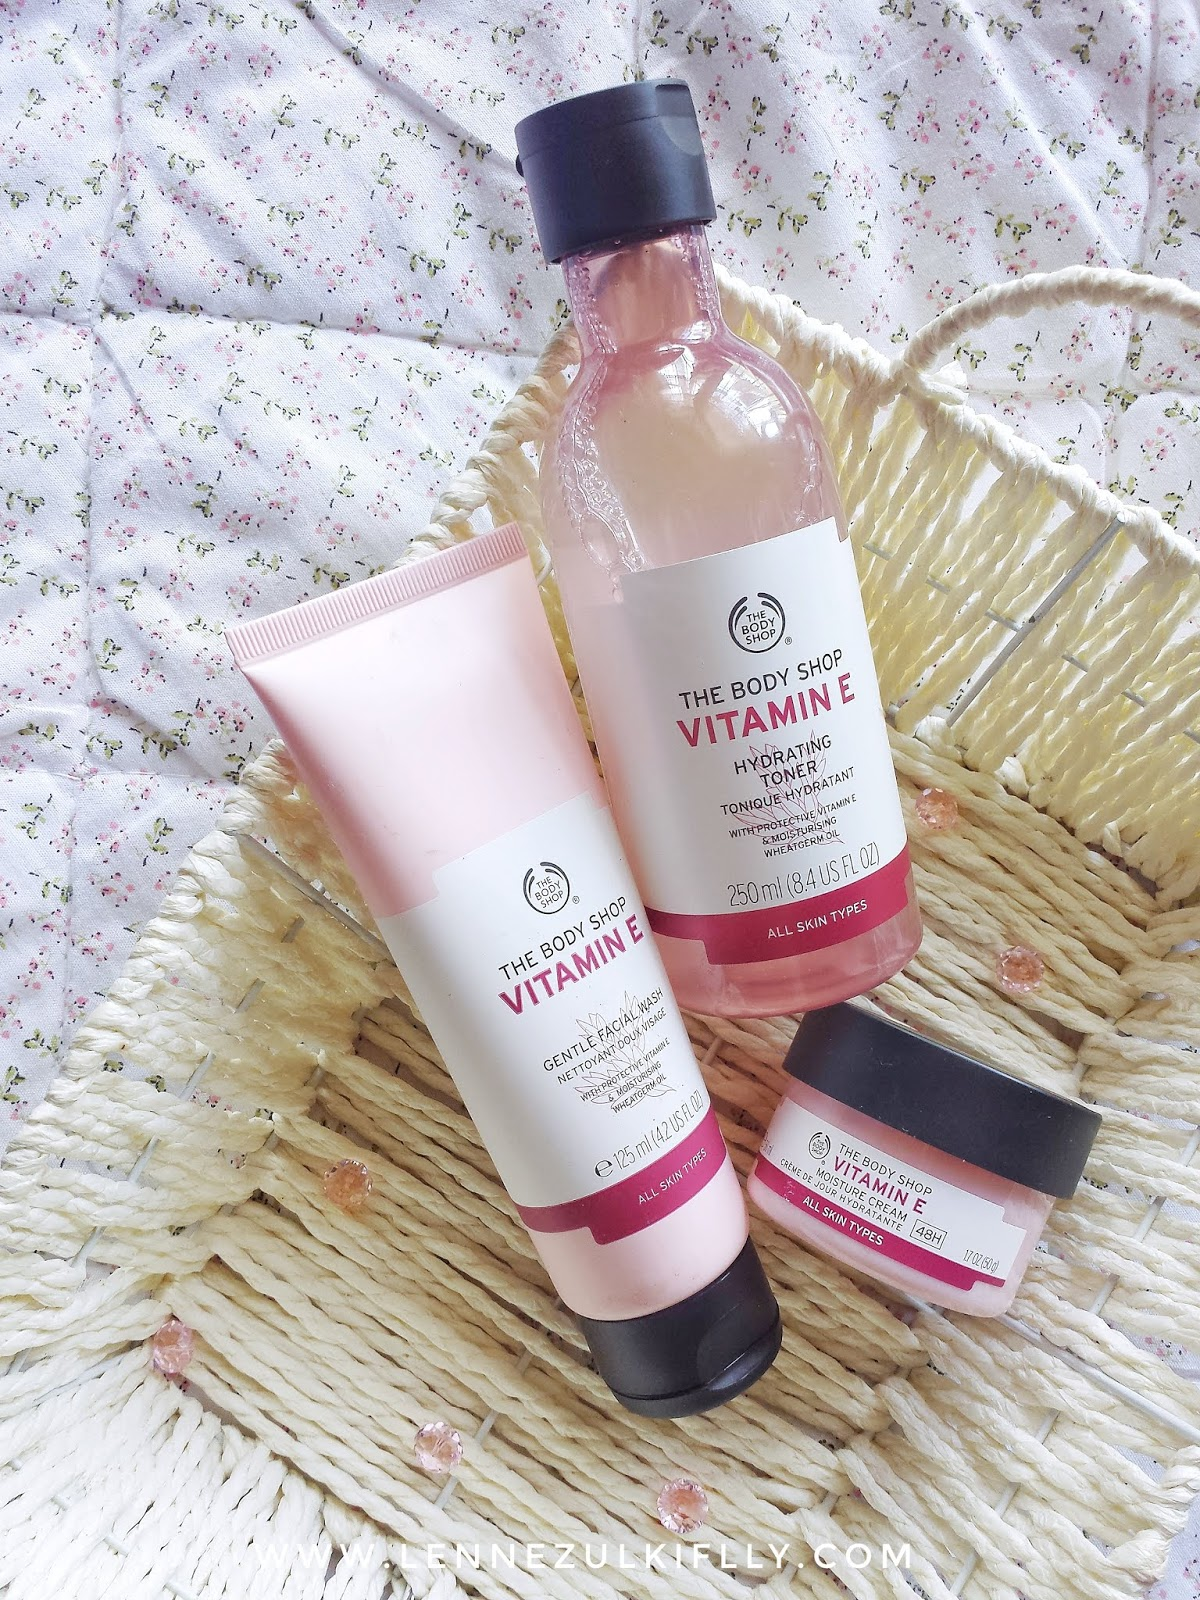 The Body Shop Vitamin E Skincare Range | LENNE ZULKIFLLY